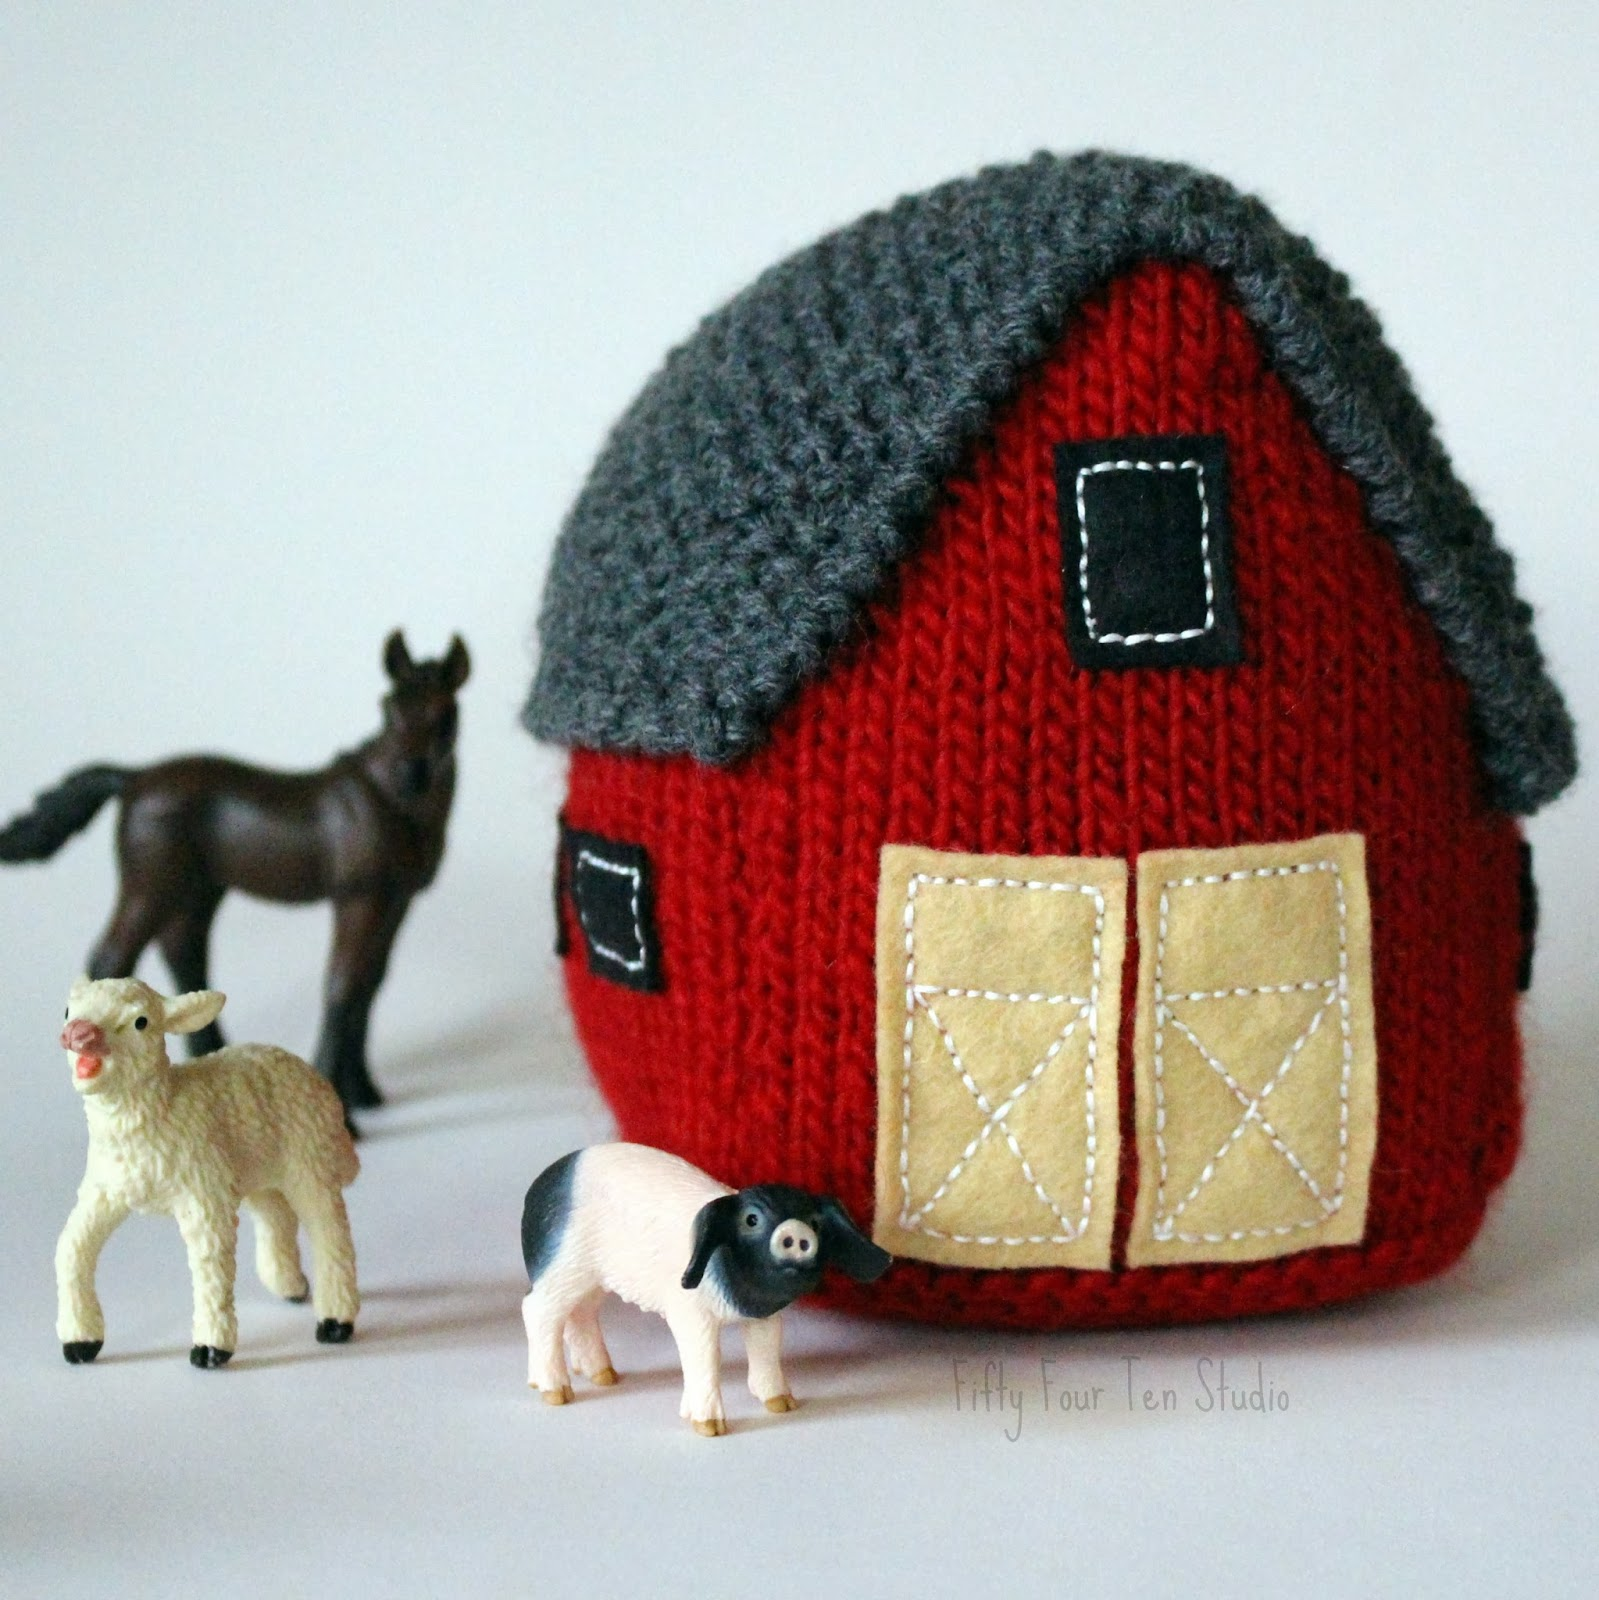 Fifty four ten studio new knitting pattern the big red barn new knitting pattern the big red barn bankloansurffo Image collections